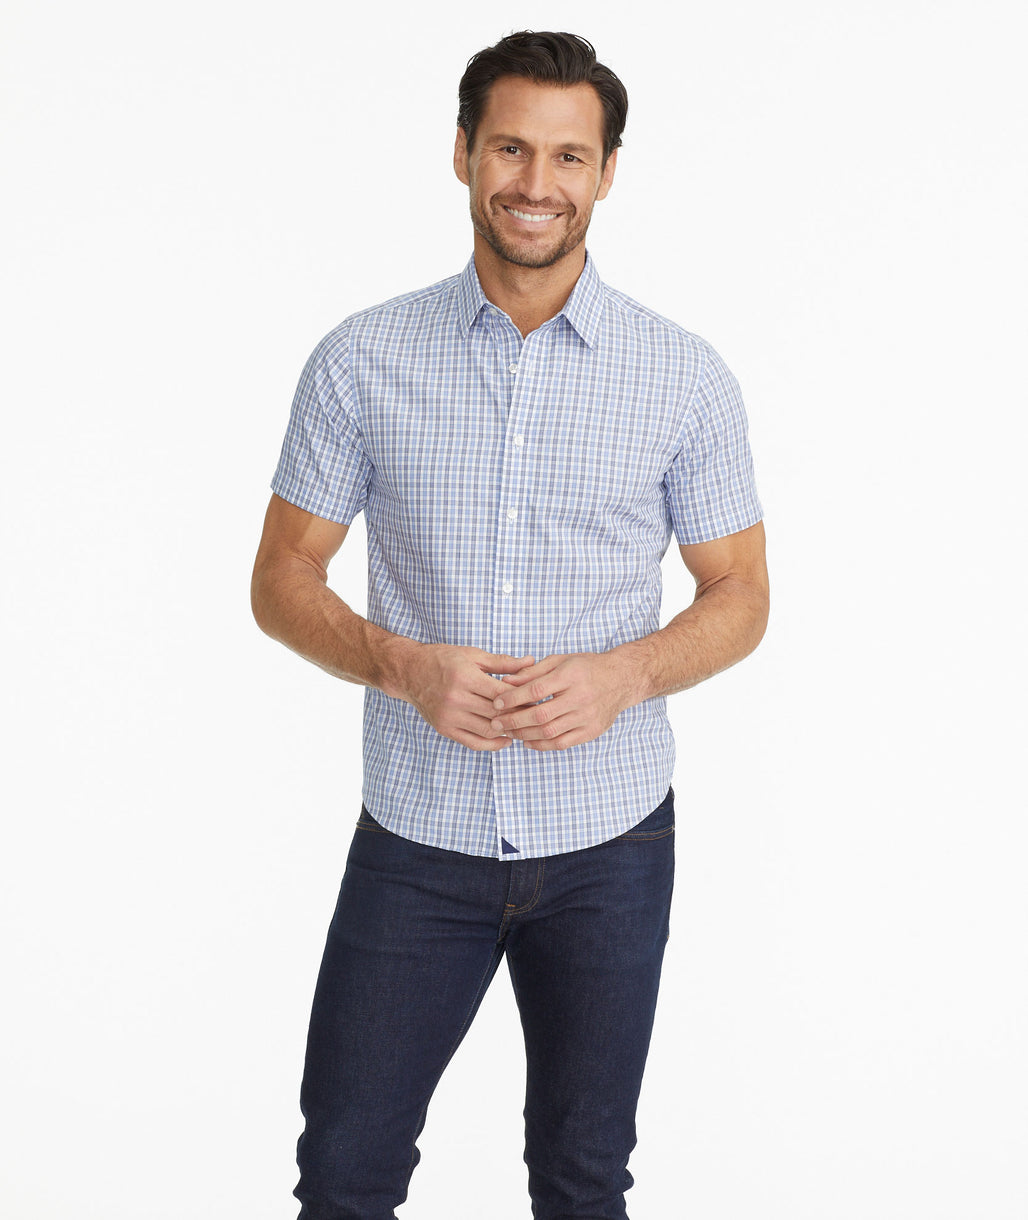 Model wearing a Blue Wrinkle-Free Short-Sleeve Shirt